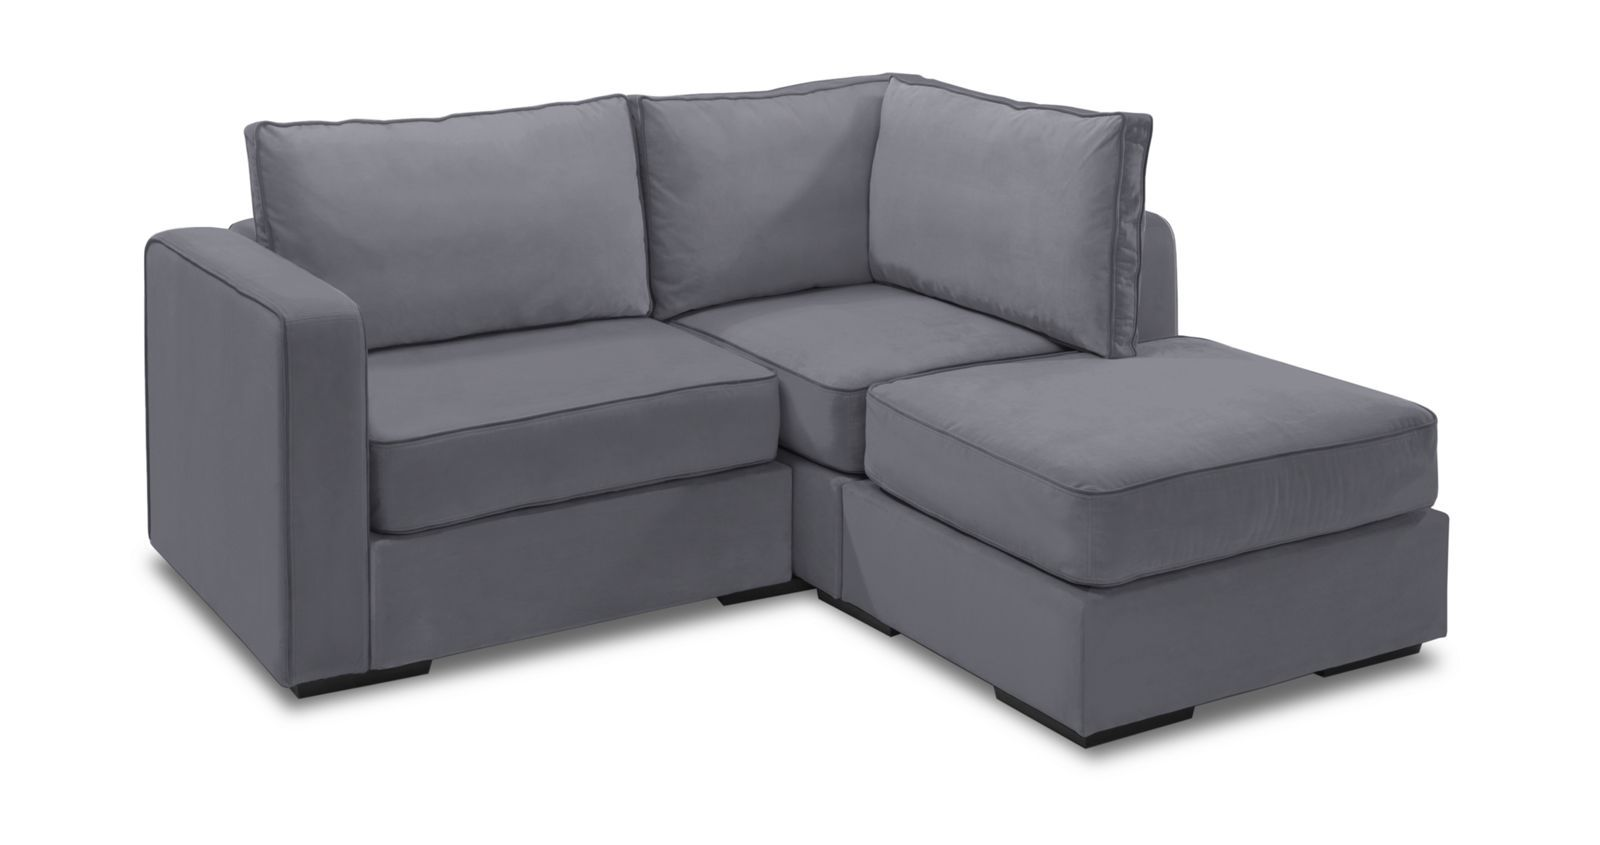 3 Seats 4 Sides Furniture For Small Spaces Couches For Small